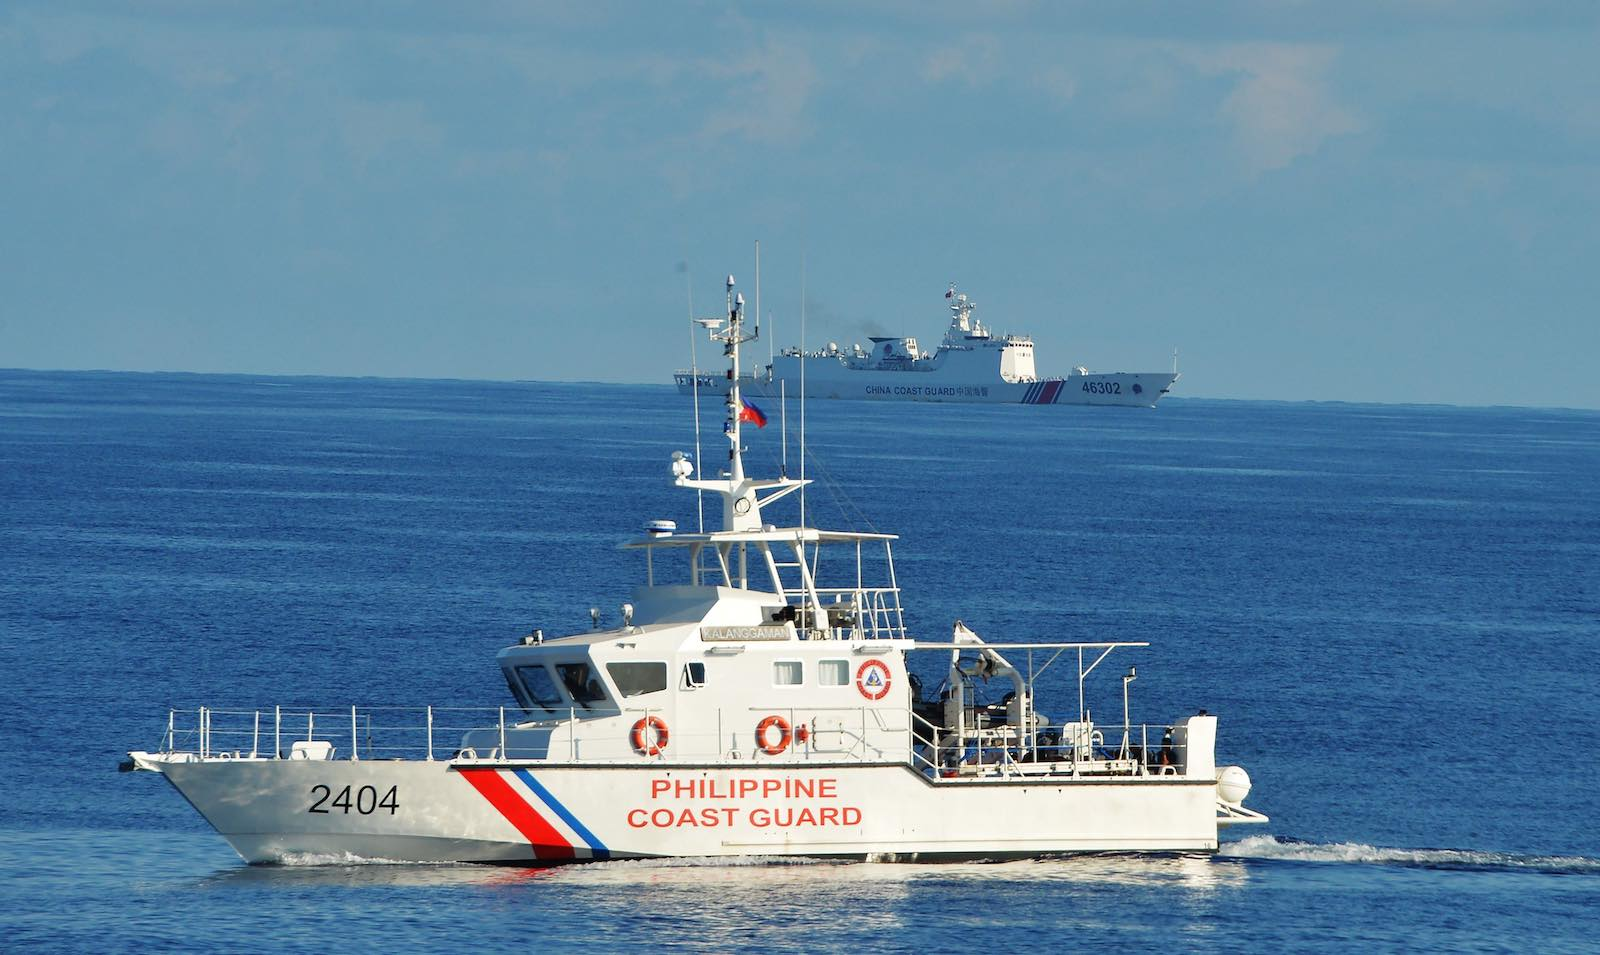 A Philippines coast guard ship sails past a Chinese coastguard ship near Scarborough shoal in the South China Sea in May 2019 (Ted Aljibe/AFP via Getty Images)